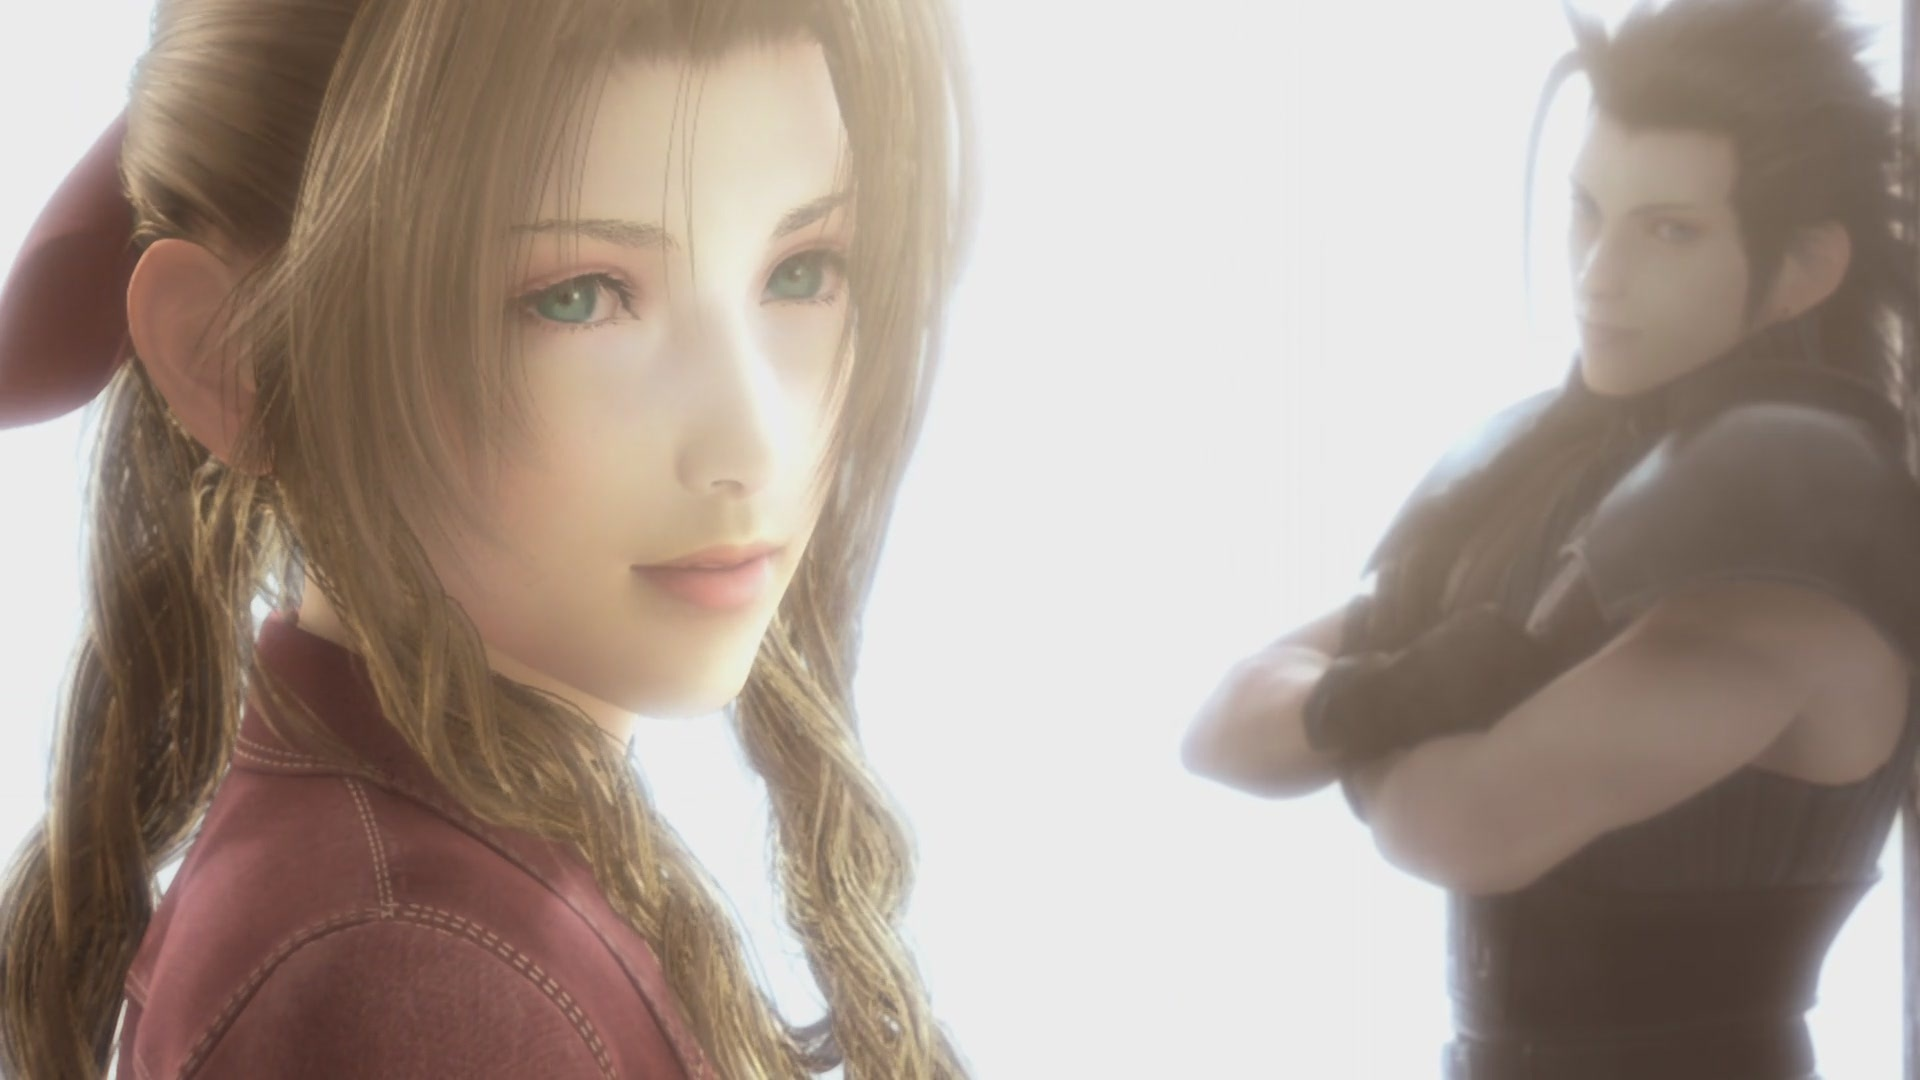 http://images4.fanpop.com/image/photos/19900000/Aerith-aerith-19938593-1920-1080.jpg